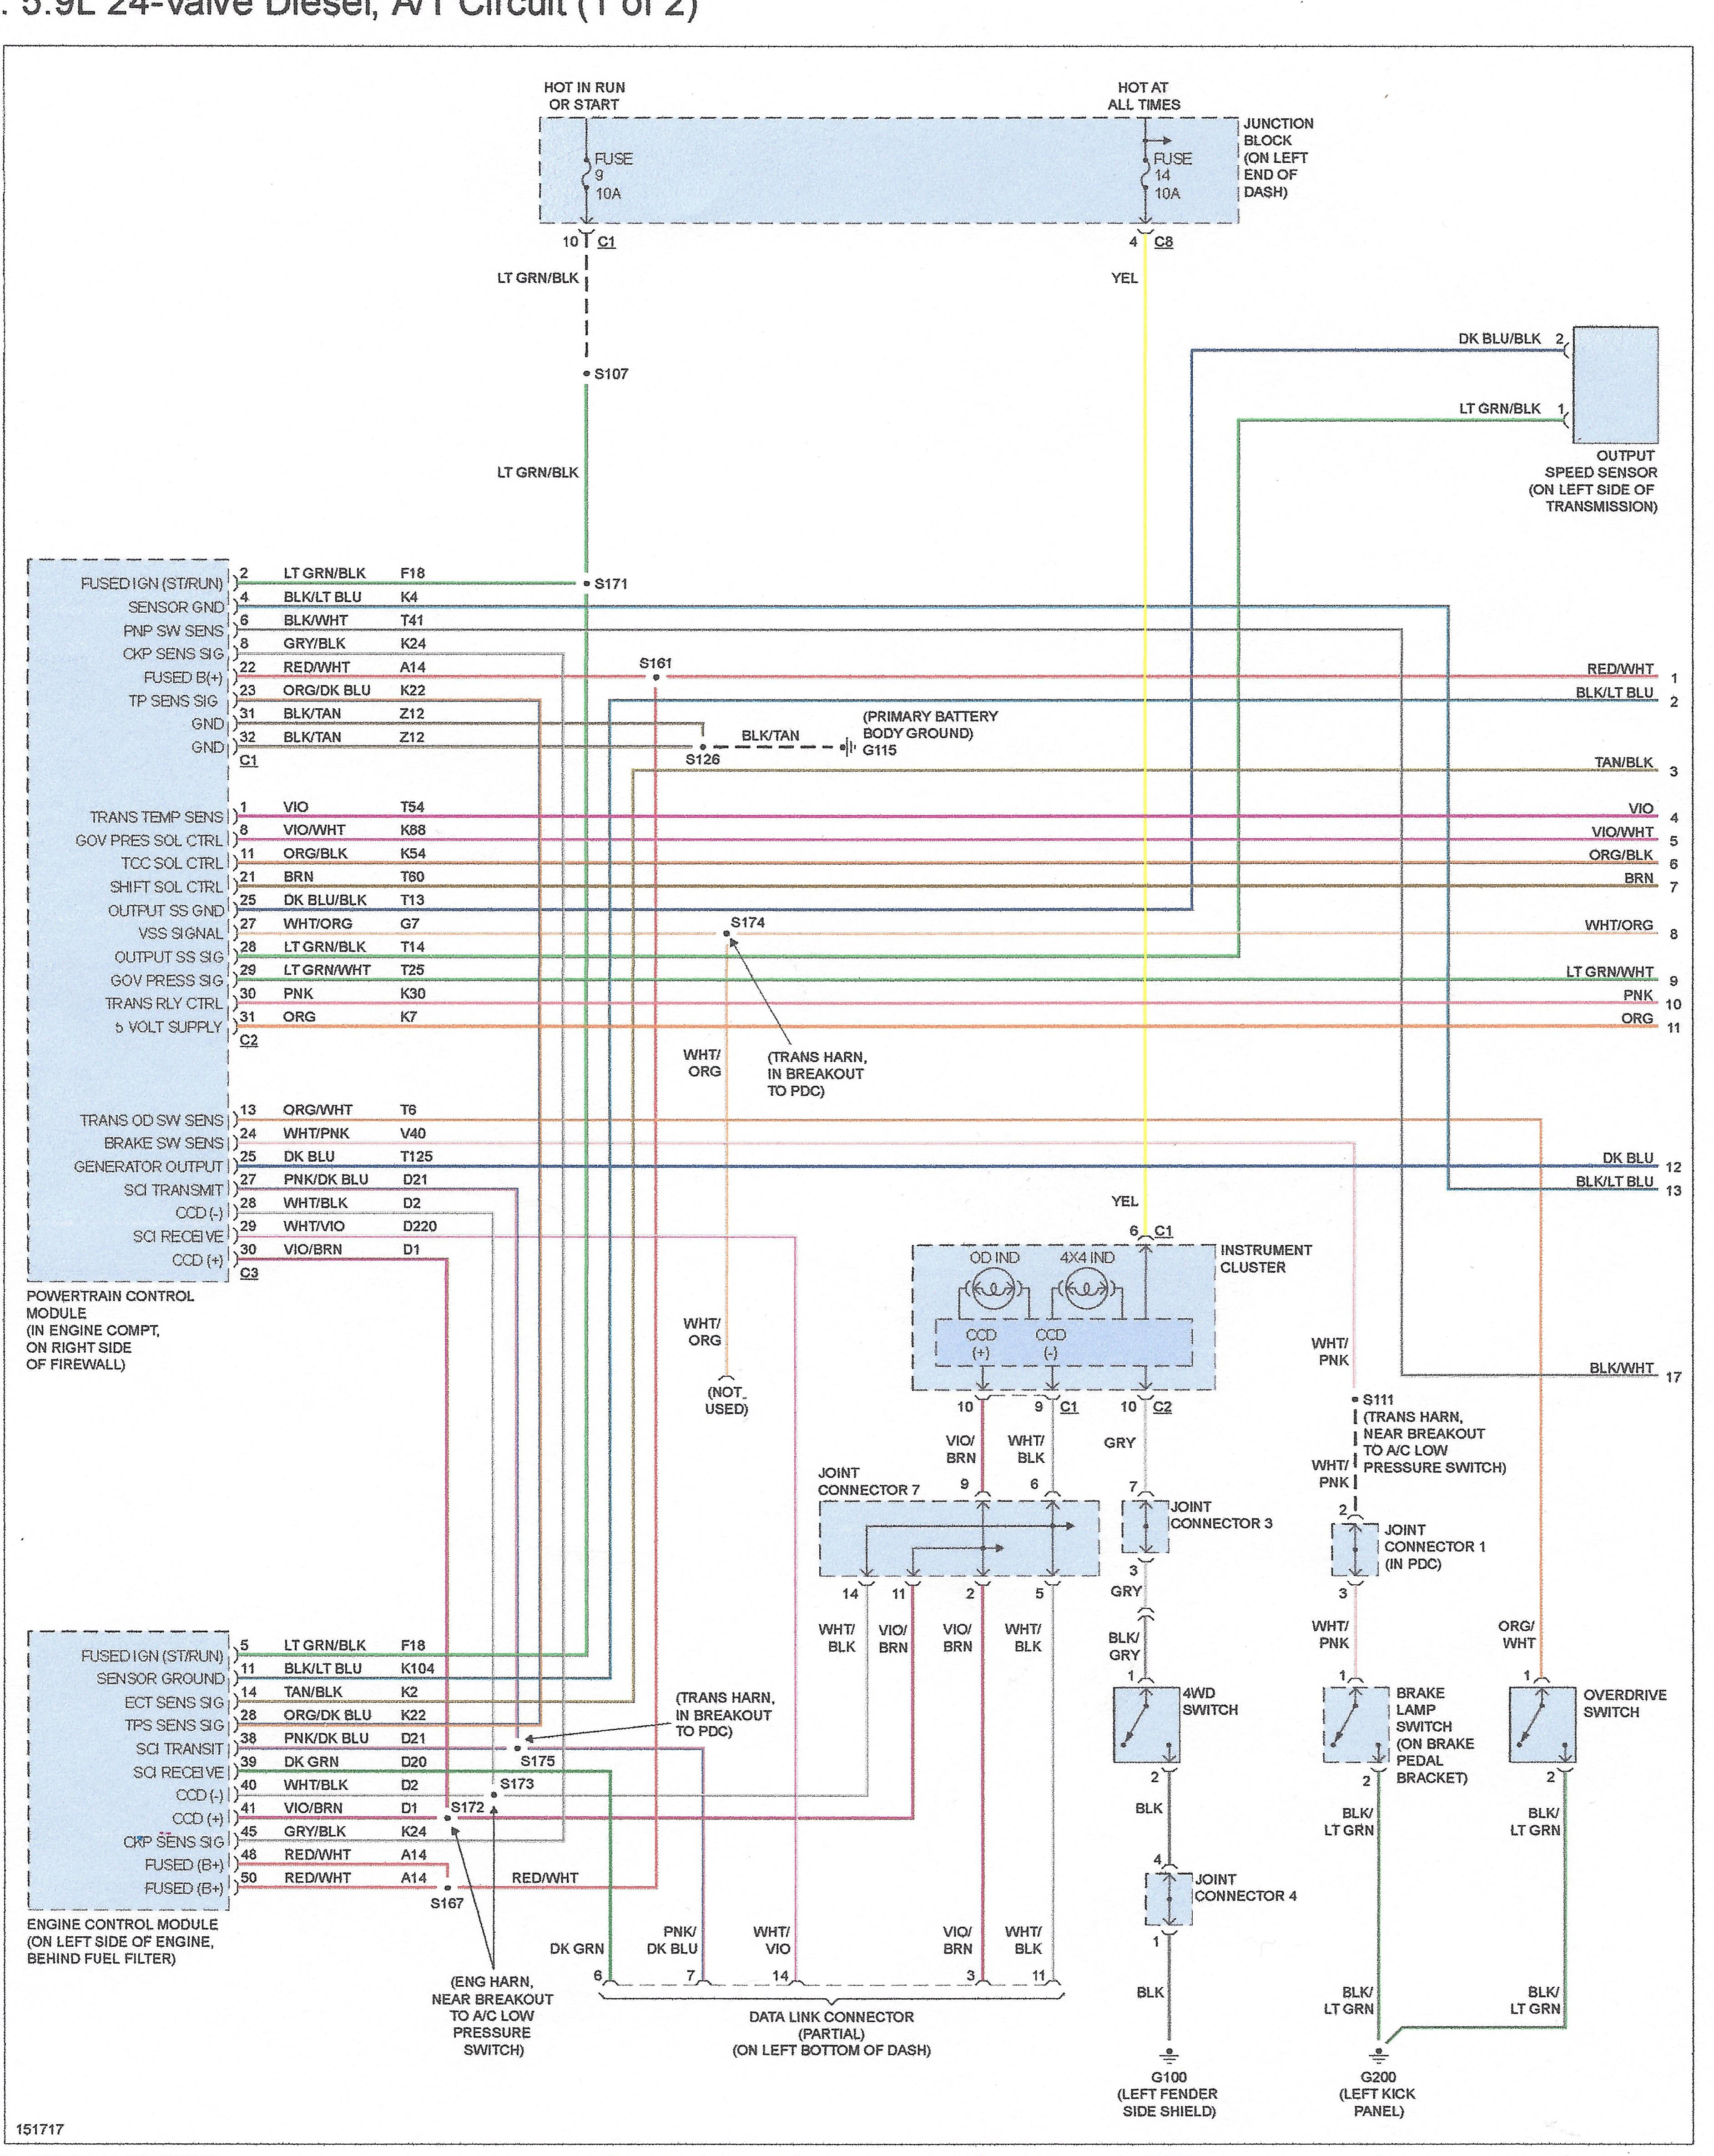 solving dodge diesel tcc lockup issues by eliminating connectors rh certifiedtransmission wordpress com 2012 dodge ram wiring diagram dodge ram light wiring  [ 3768 x 4740 Pixel ]